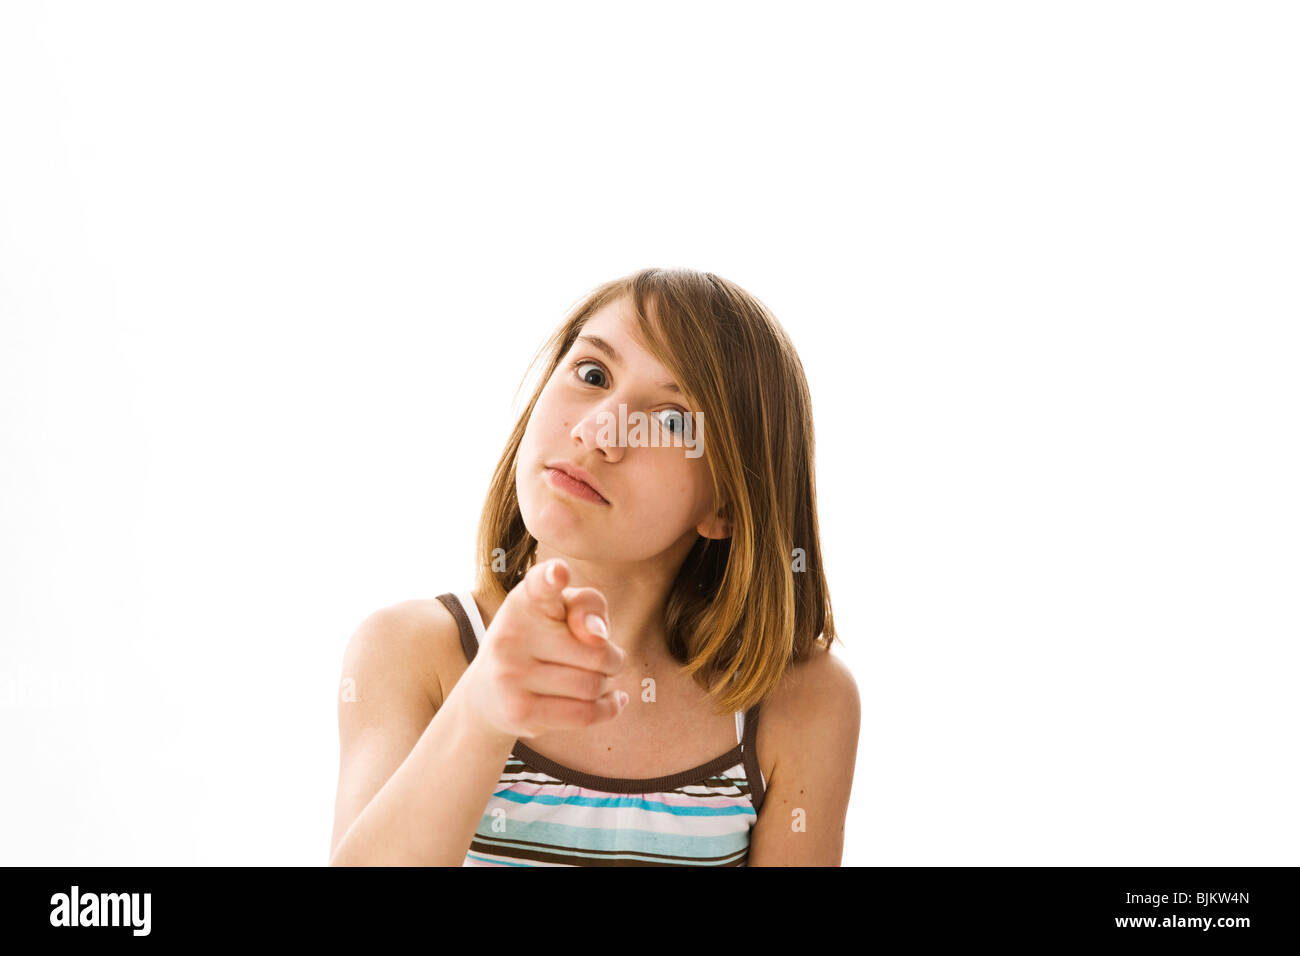 A girl seriously pointing foward with her index finger Stock Photo